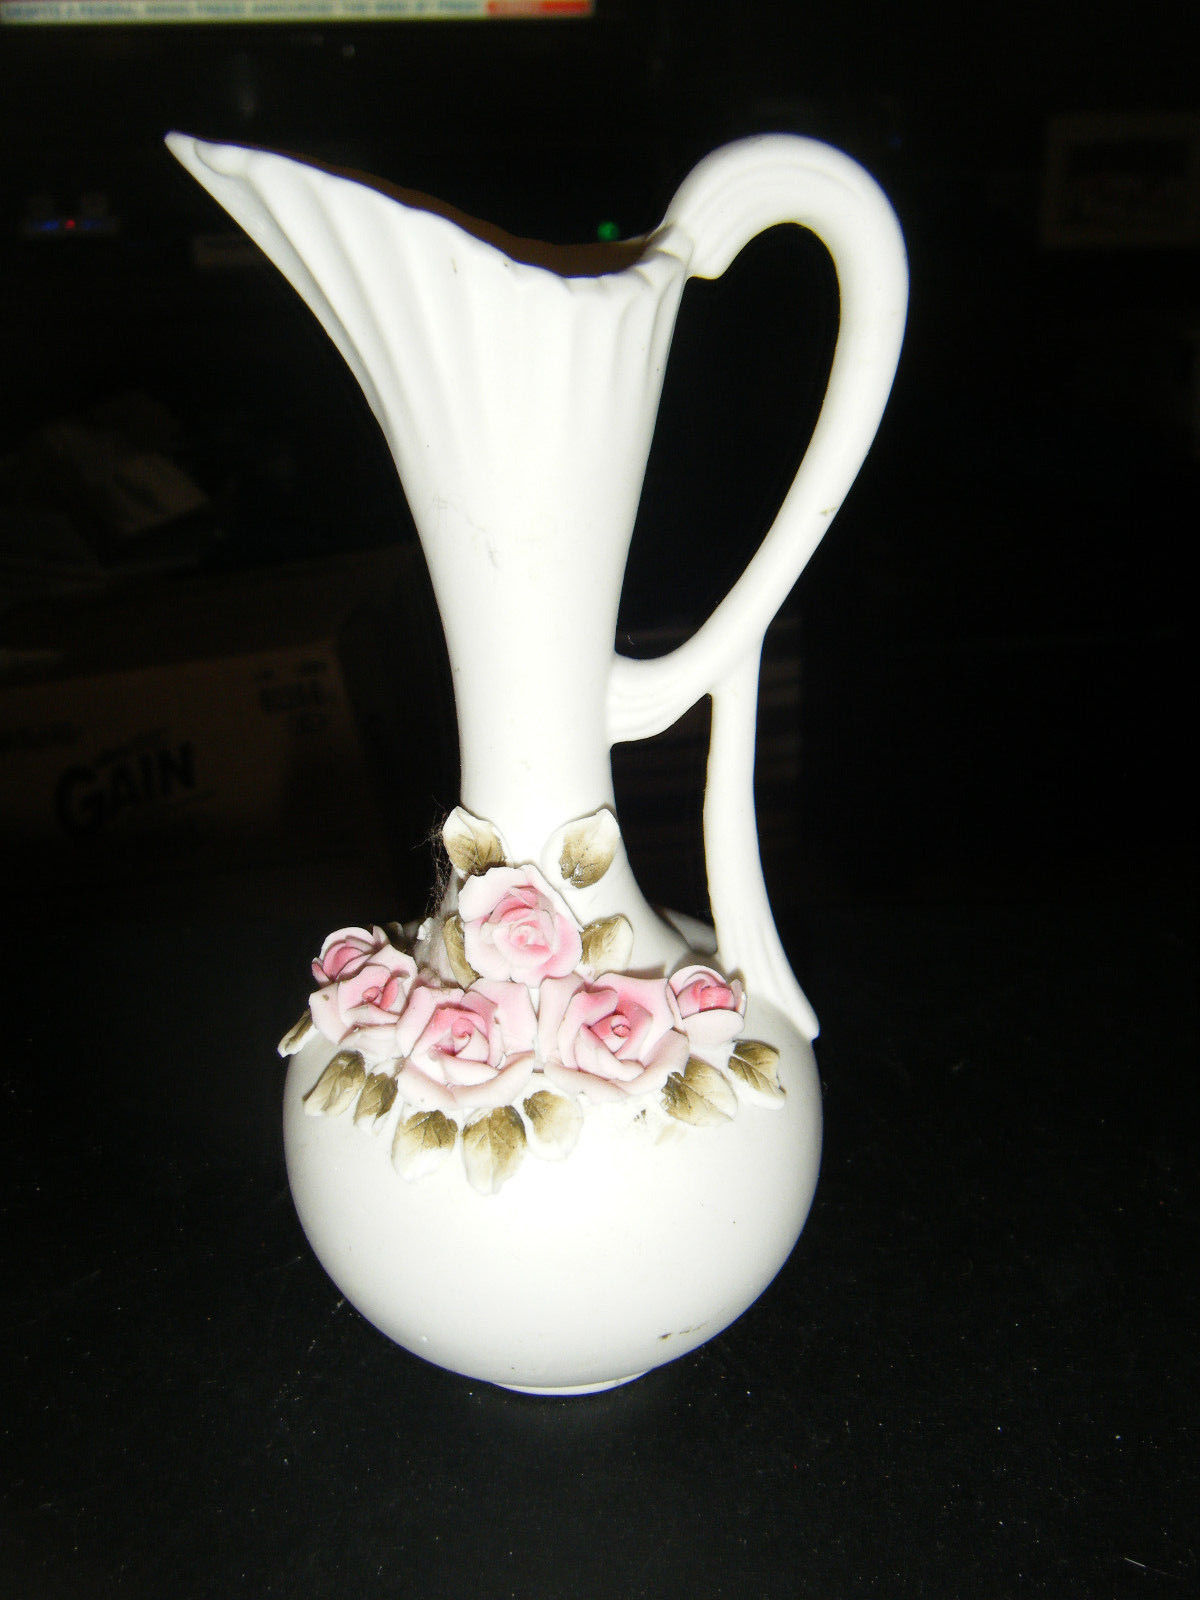 Primary image for Porcelain Bisque Pink Rose Embellished Decorative Pitcher - Japan